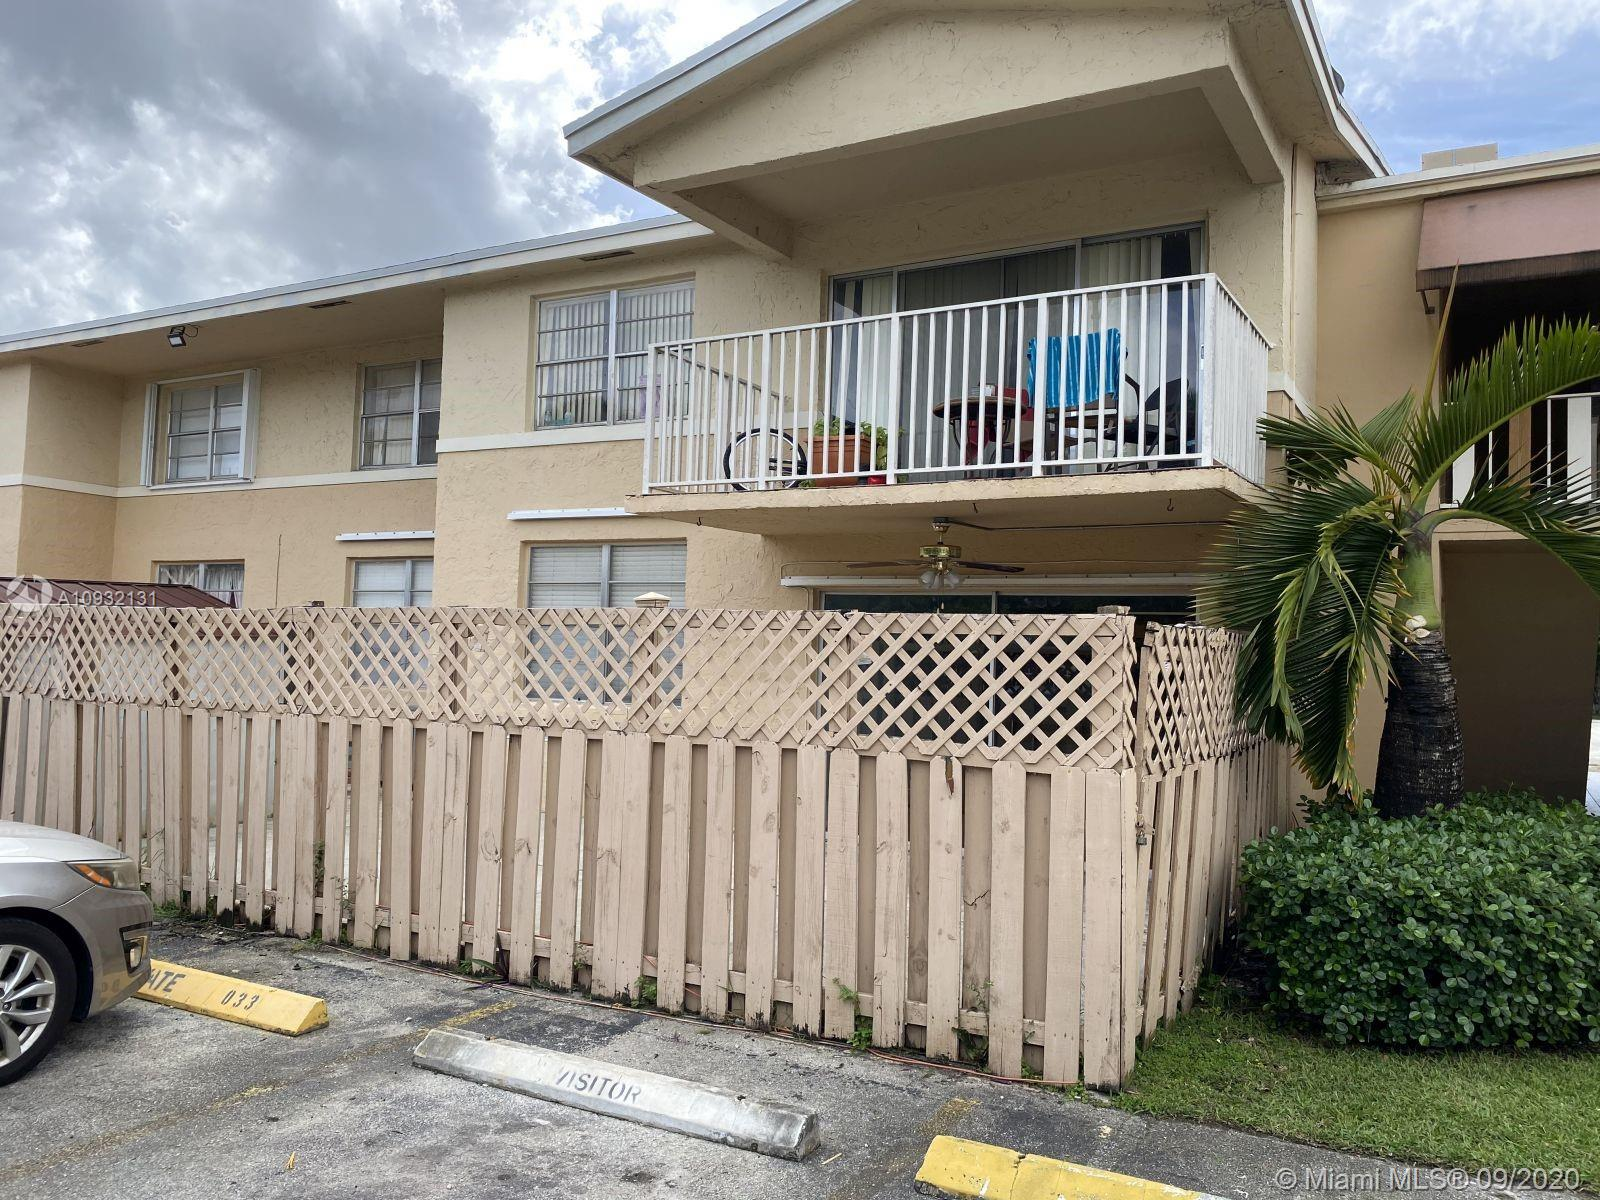 4420 NW 79th Ave # 1H, Doral, Florida 33166, 2 Bedrooms Bedrooms, ,2 BathroomsBathrooms,Residential Lease,For Rent,4420 NW 79th Ave # 1H,A10932131